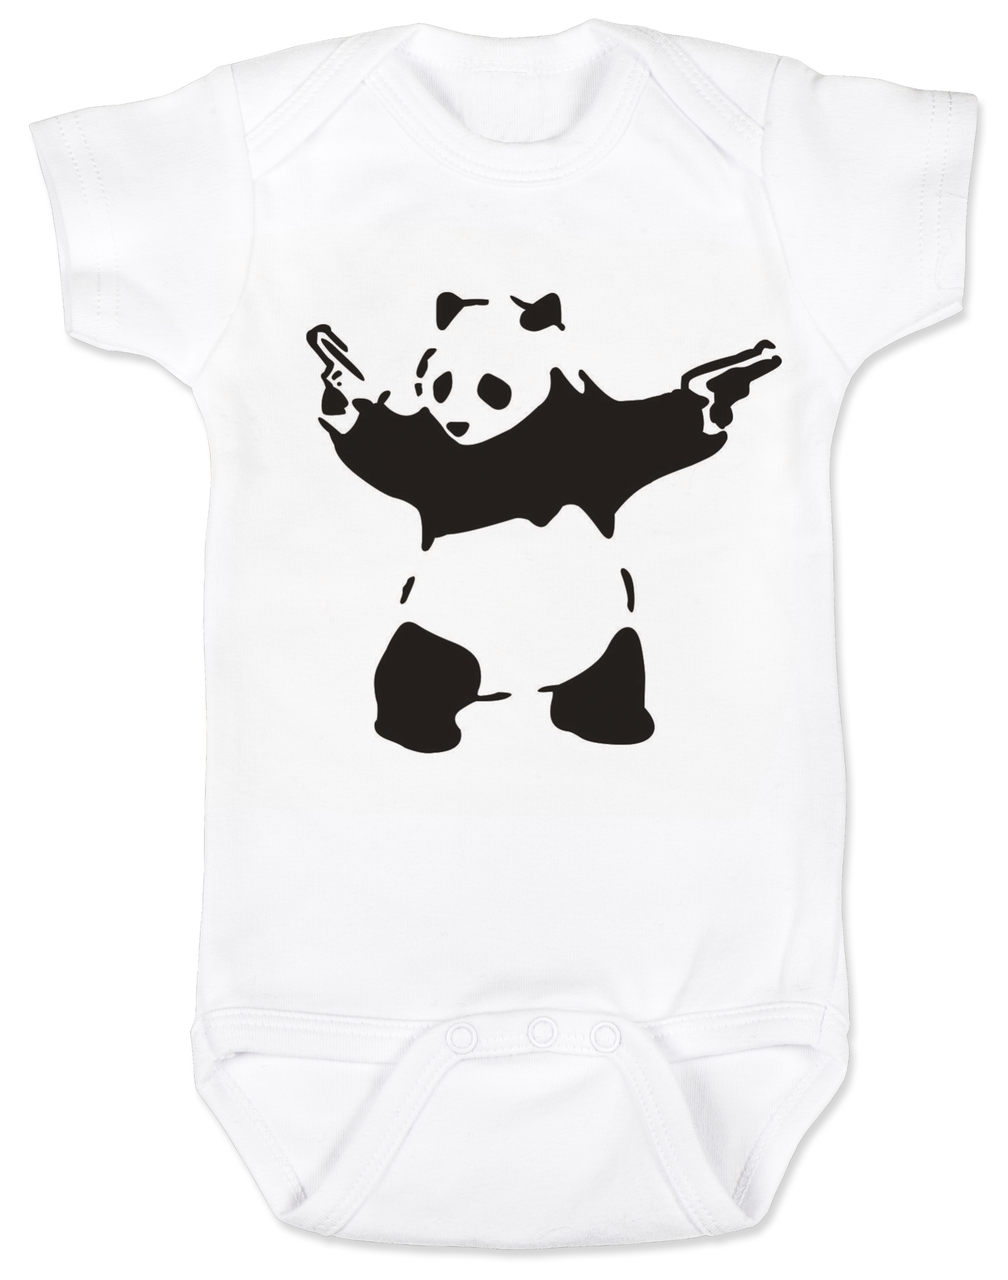 fe270bf6545 Banksy panda with guns baby Bodysuit, Banksy baby clothing, white